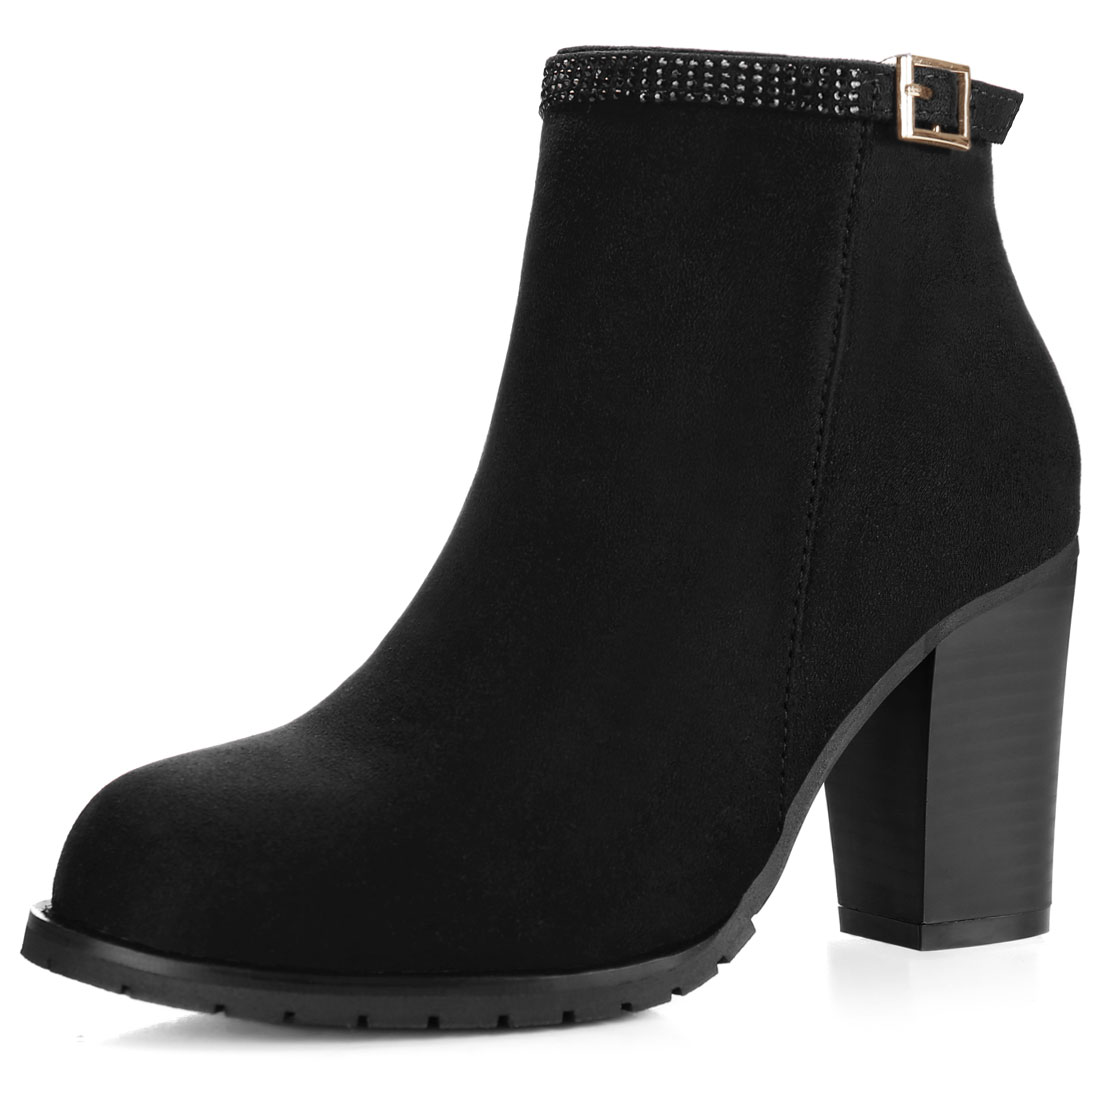 Women Rhinestone Strap Chunky High Heel Ankle Booties Black US 10